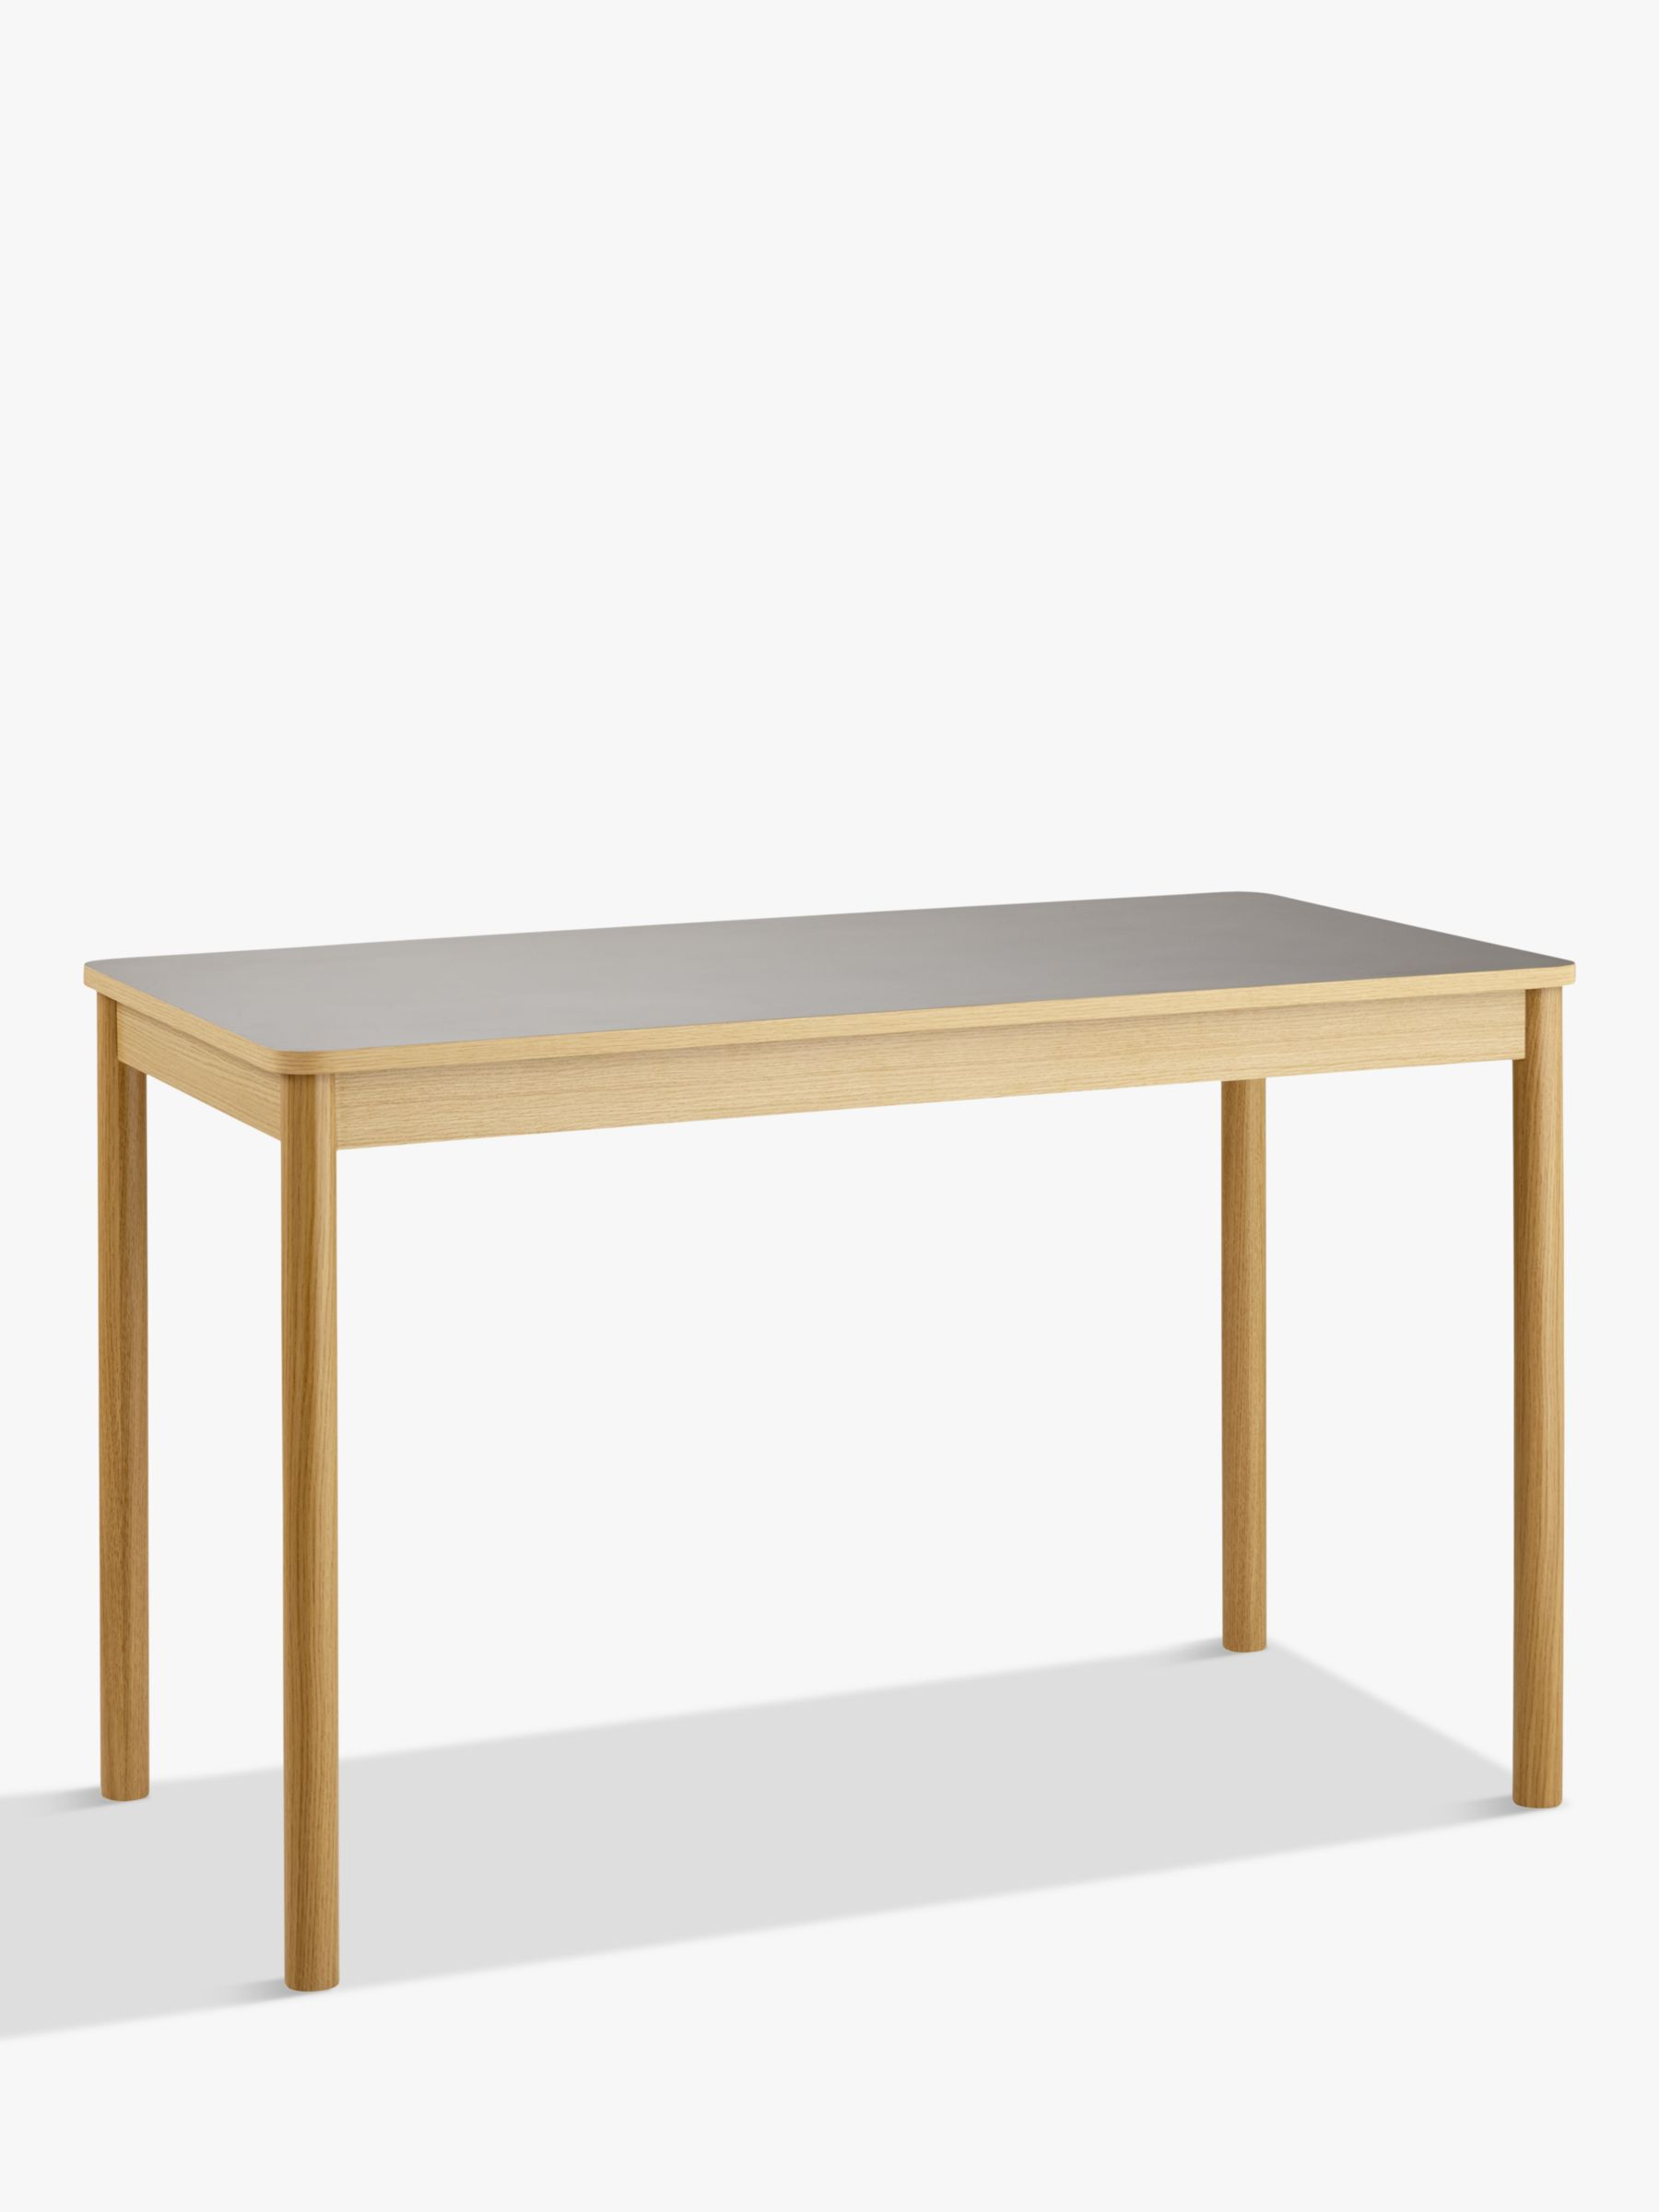 John Lewis Peyton 4 Seater Kitchen Dining Table Octer  : 234249211zoom from www.octer.co.uk size 2400 x 2400 jpeg 132kB